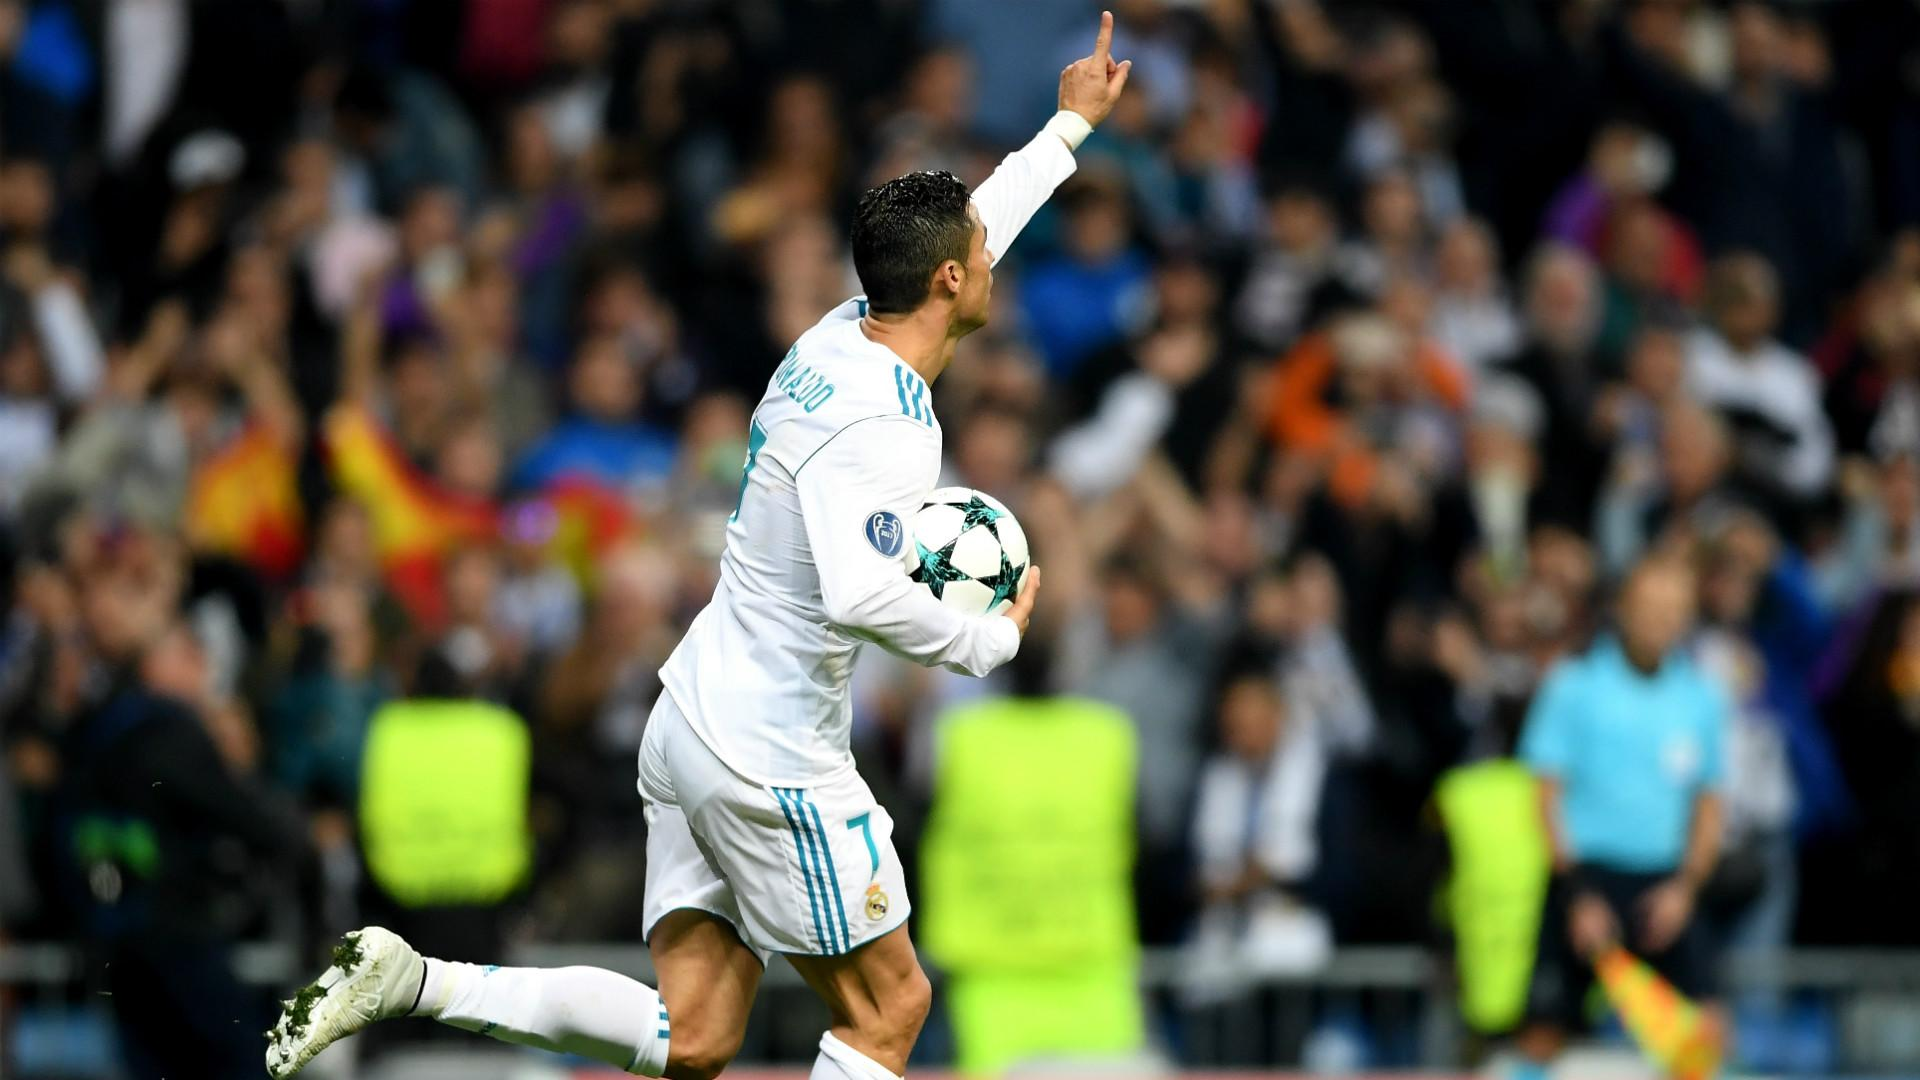 Calendar Year Goals Record : Ronaldo breaks record for champions league goals in a